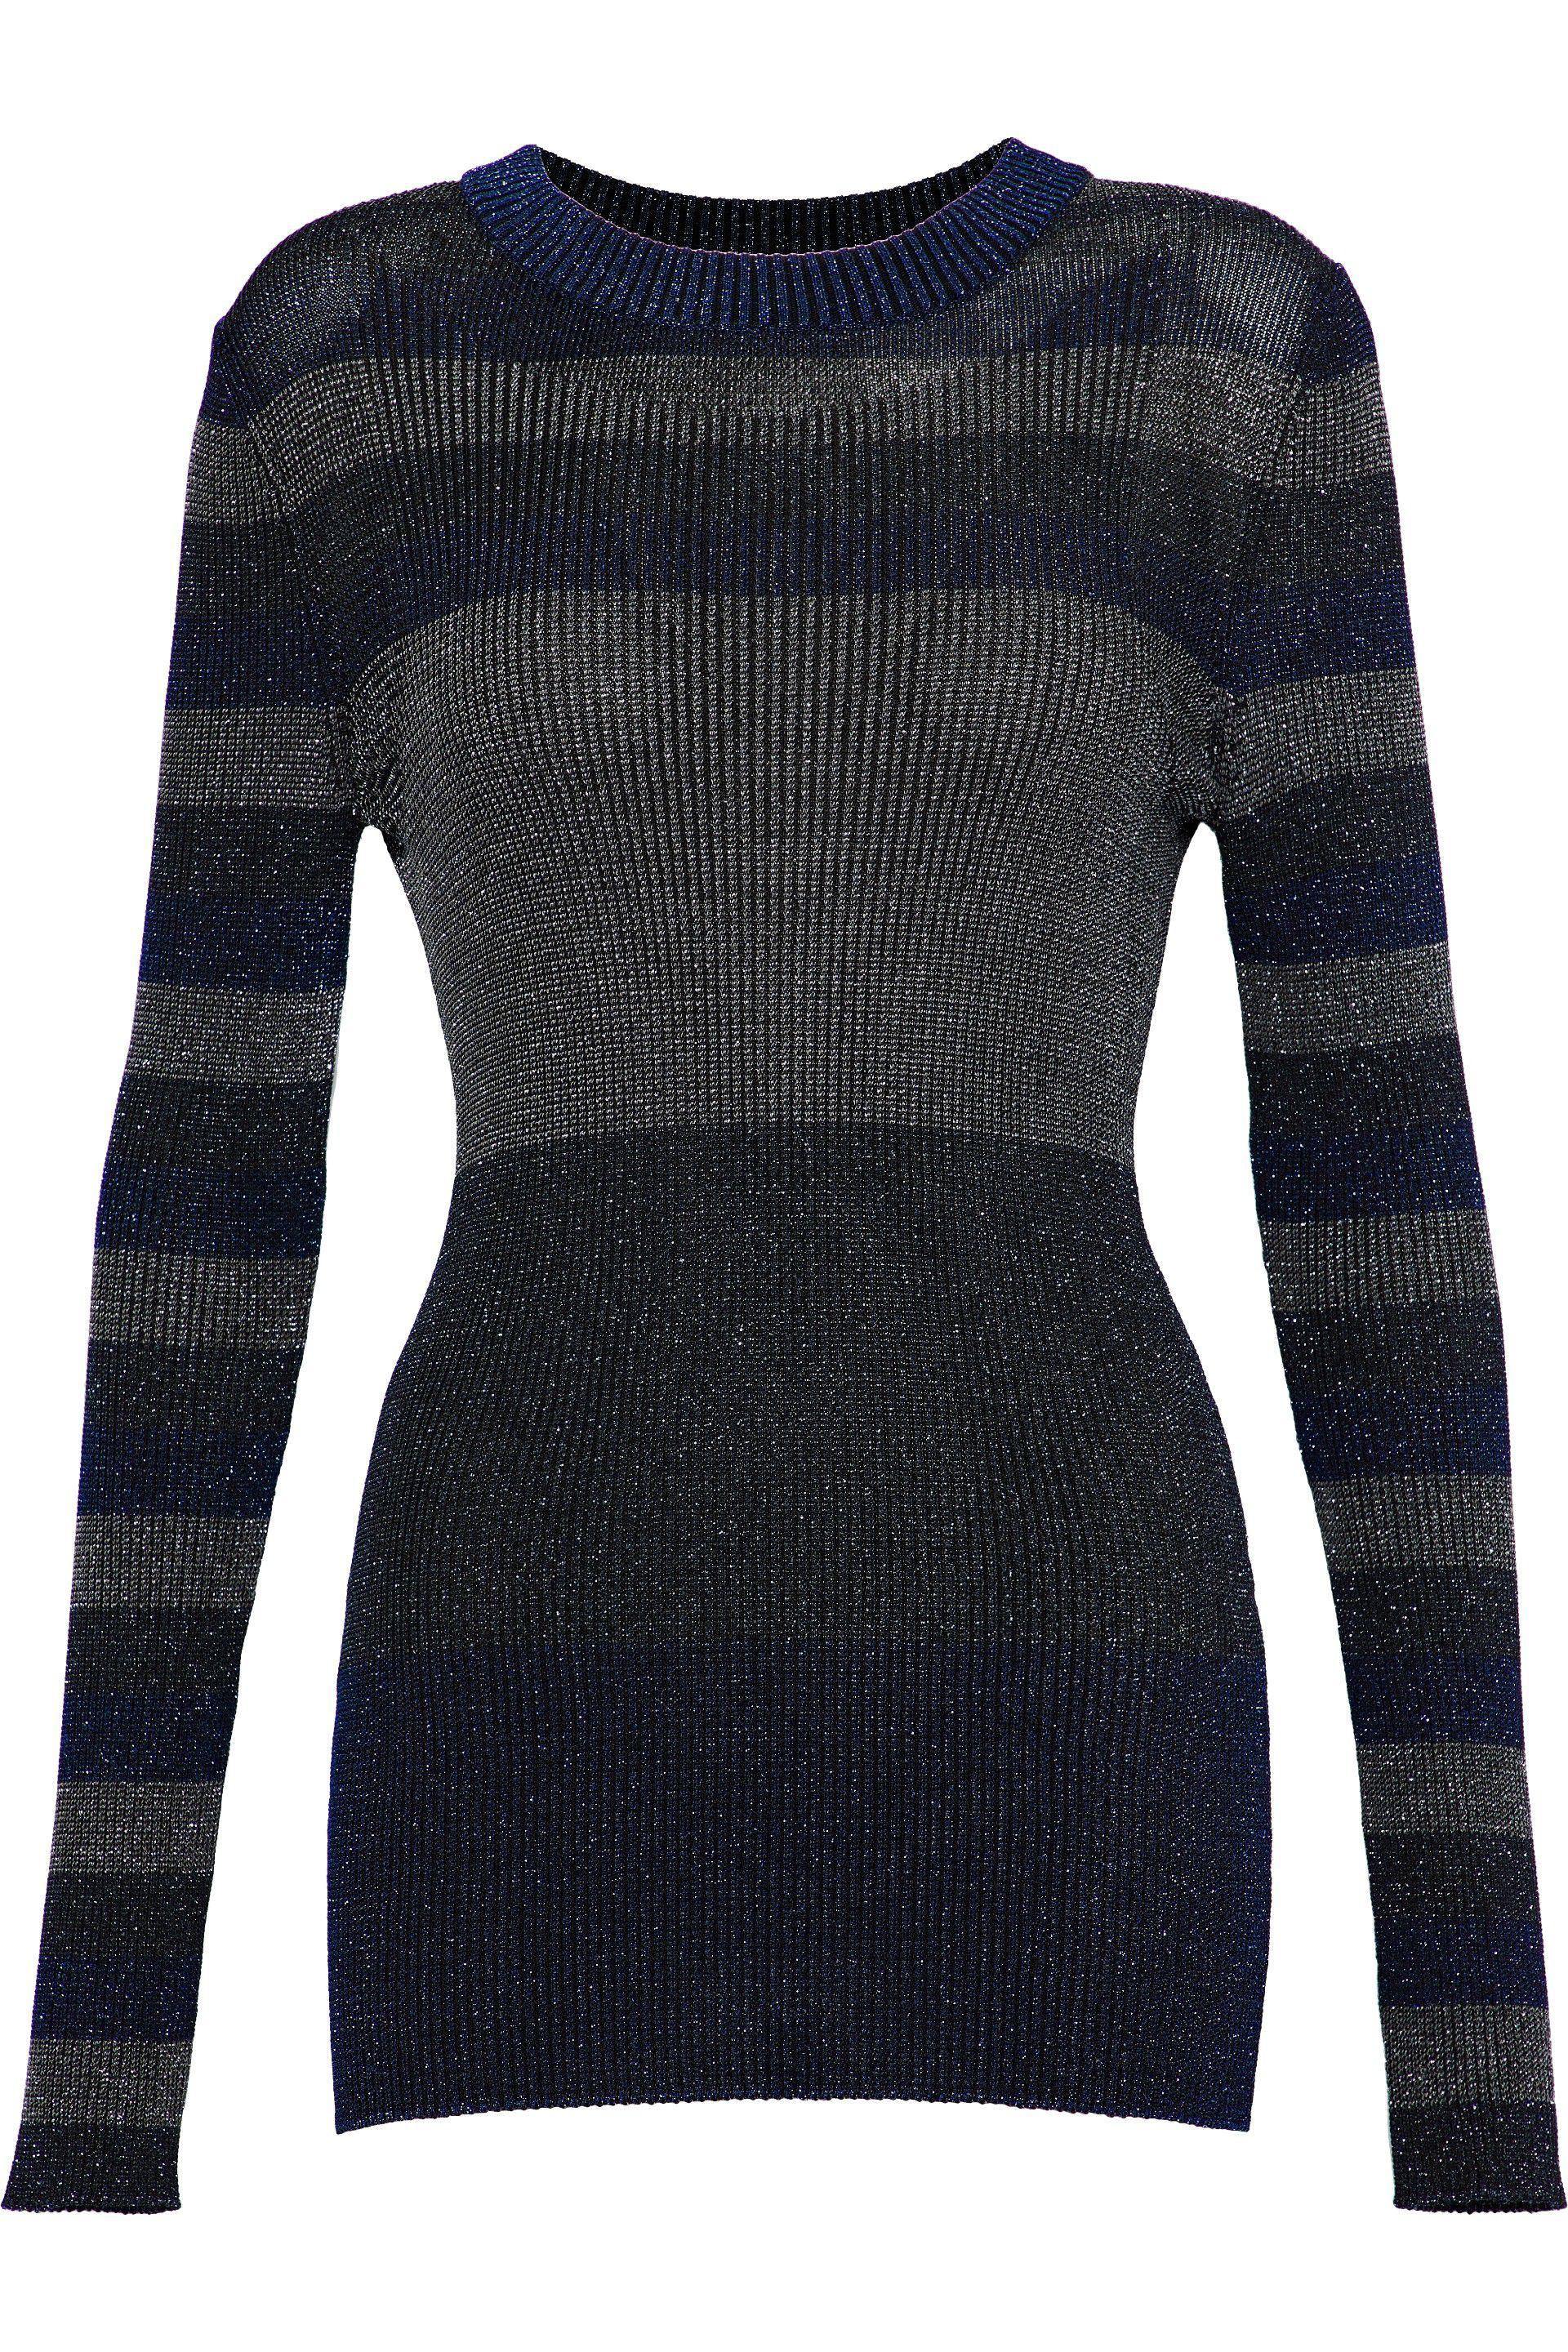 Sonia Rykiel Woman Color-block Metallic Ribbed-knit Top Midnight Blue Size XS Sonia Rykiel Free Shipping Cheap Online From China Low Shipping Fee pf9Mq5H1